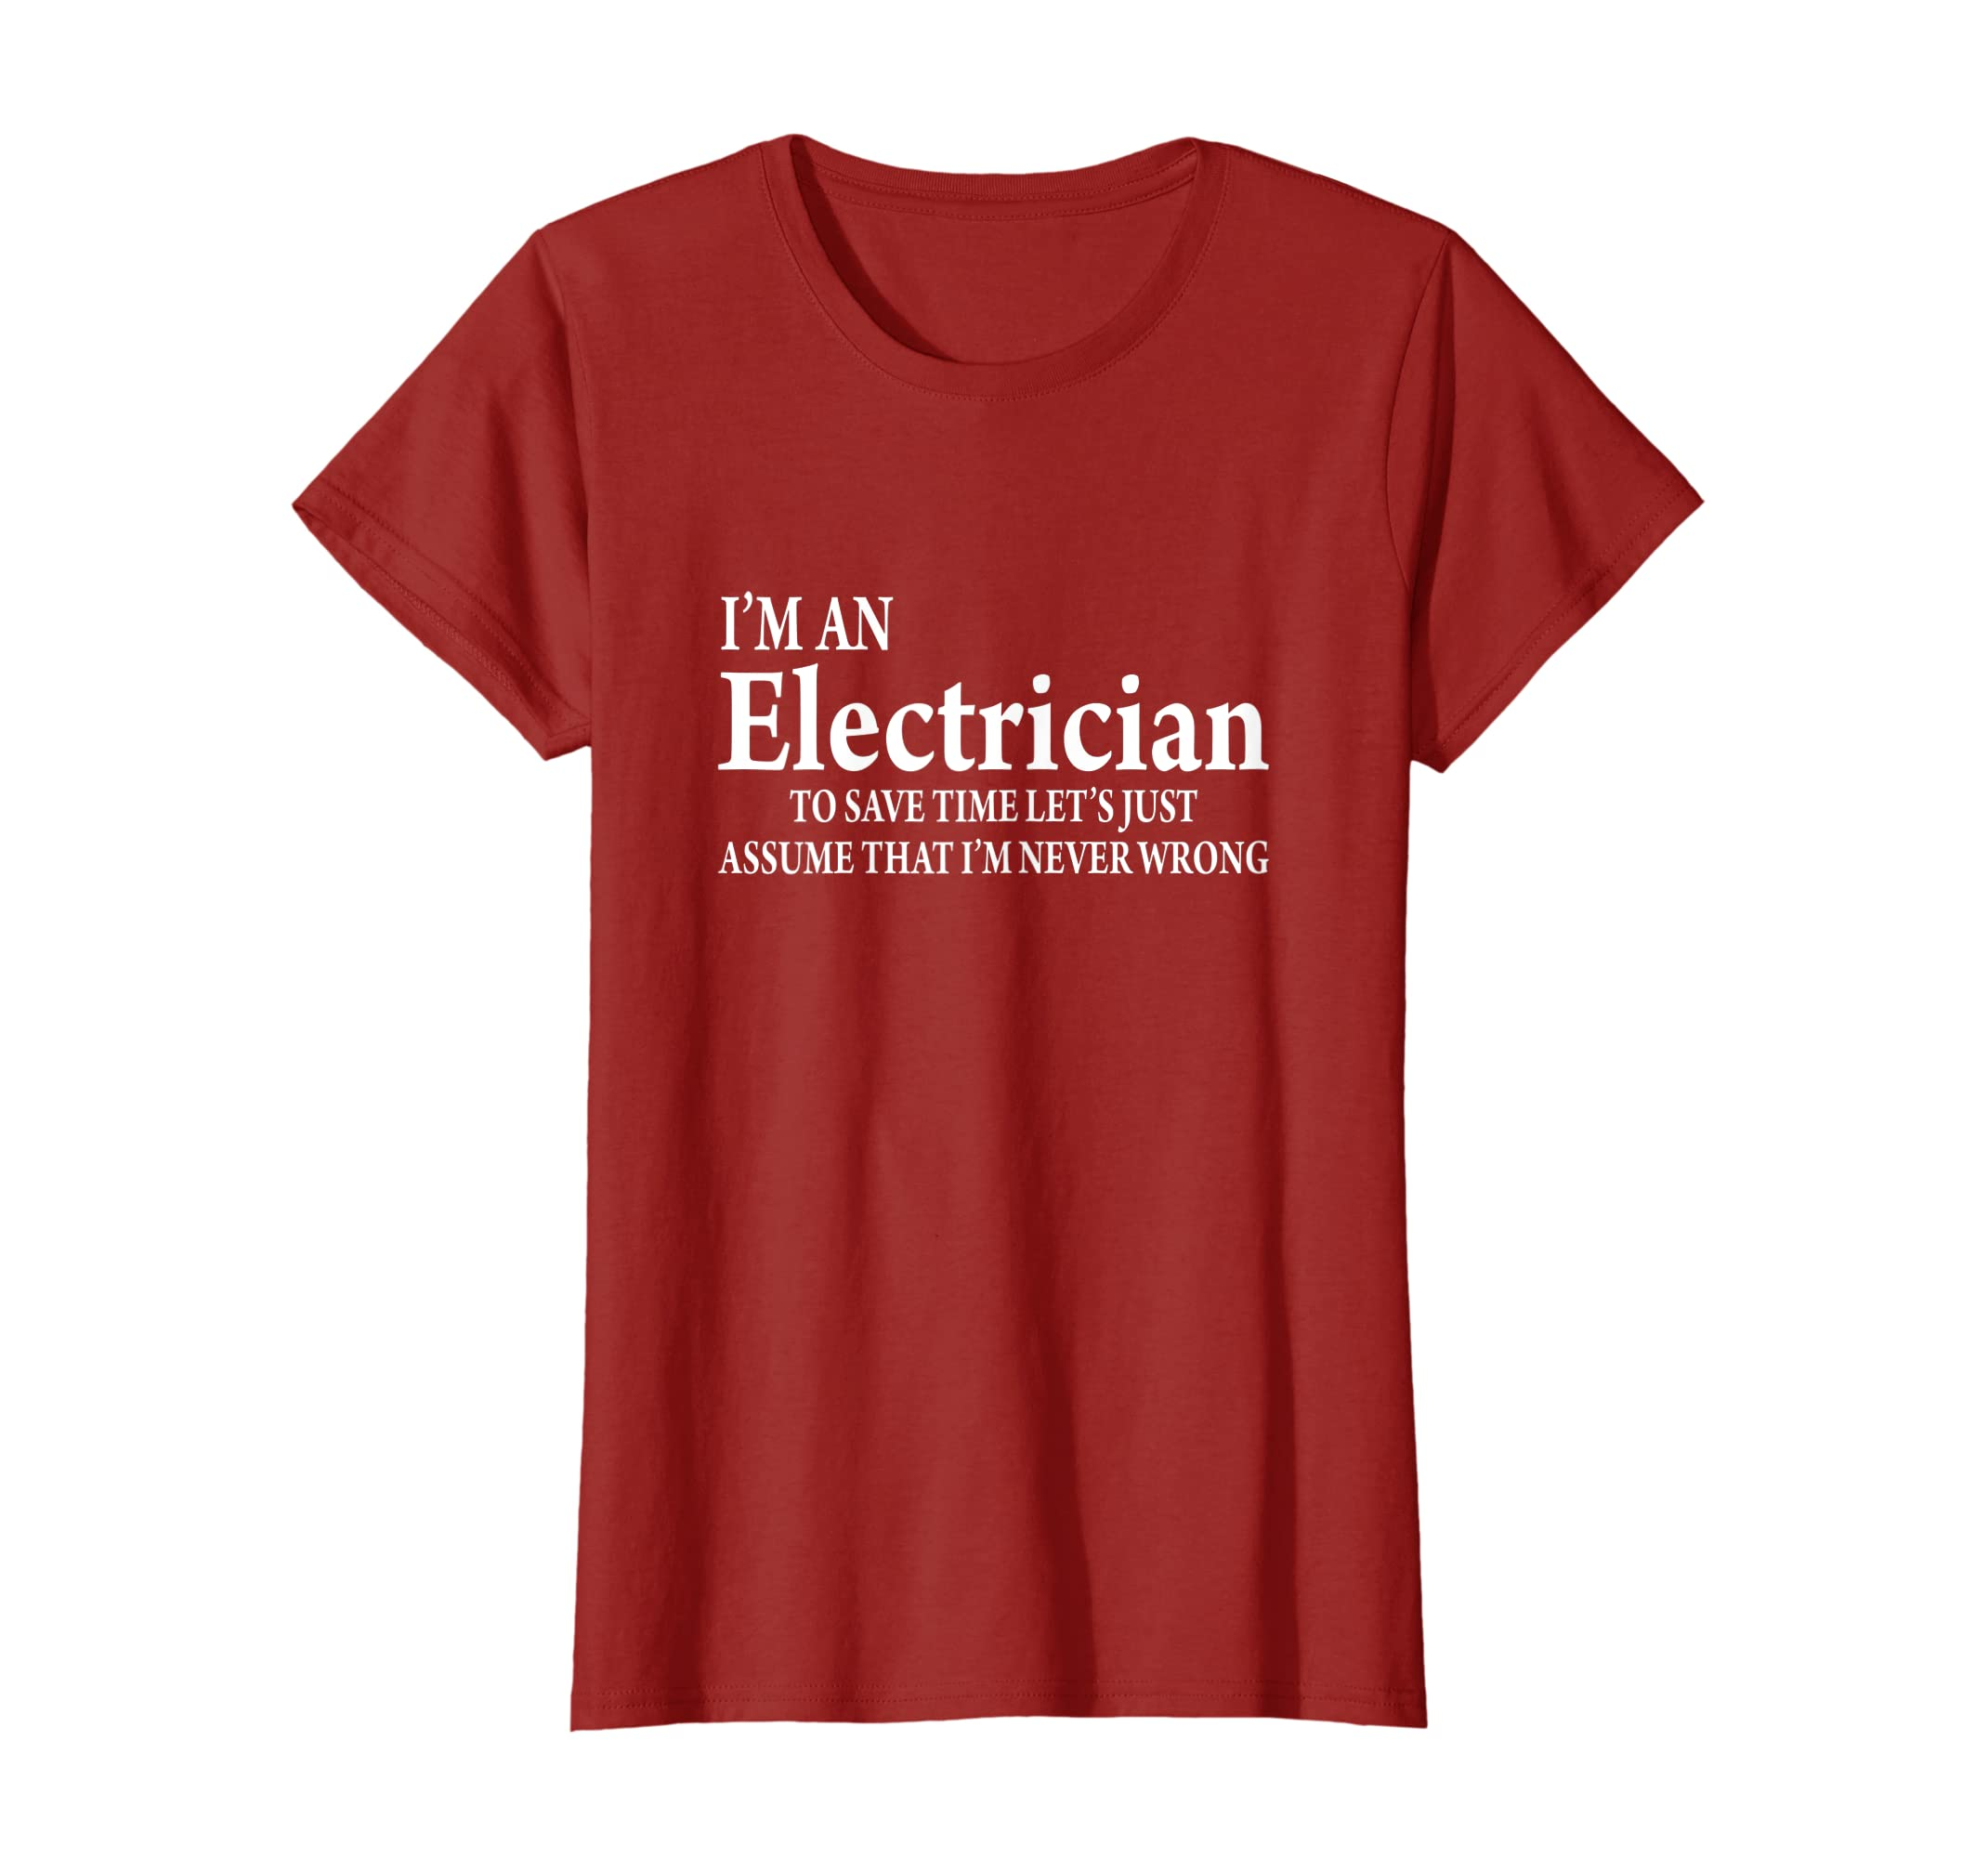 ed96fac2b51 Amazon.com  Funny Electrician Quotes T-Shirt